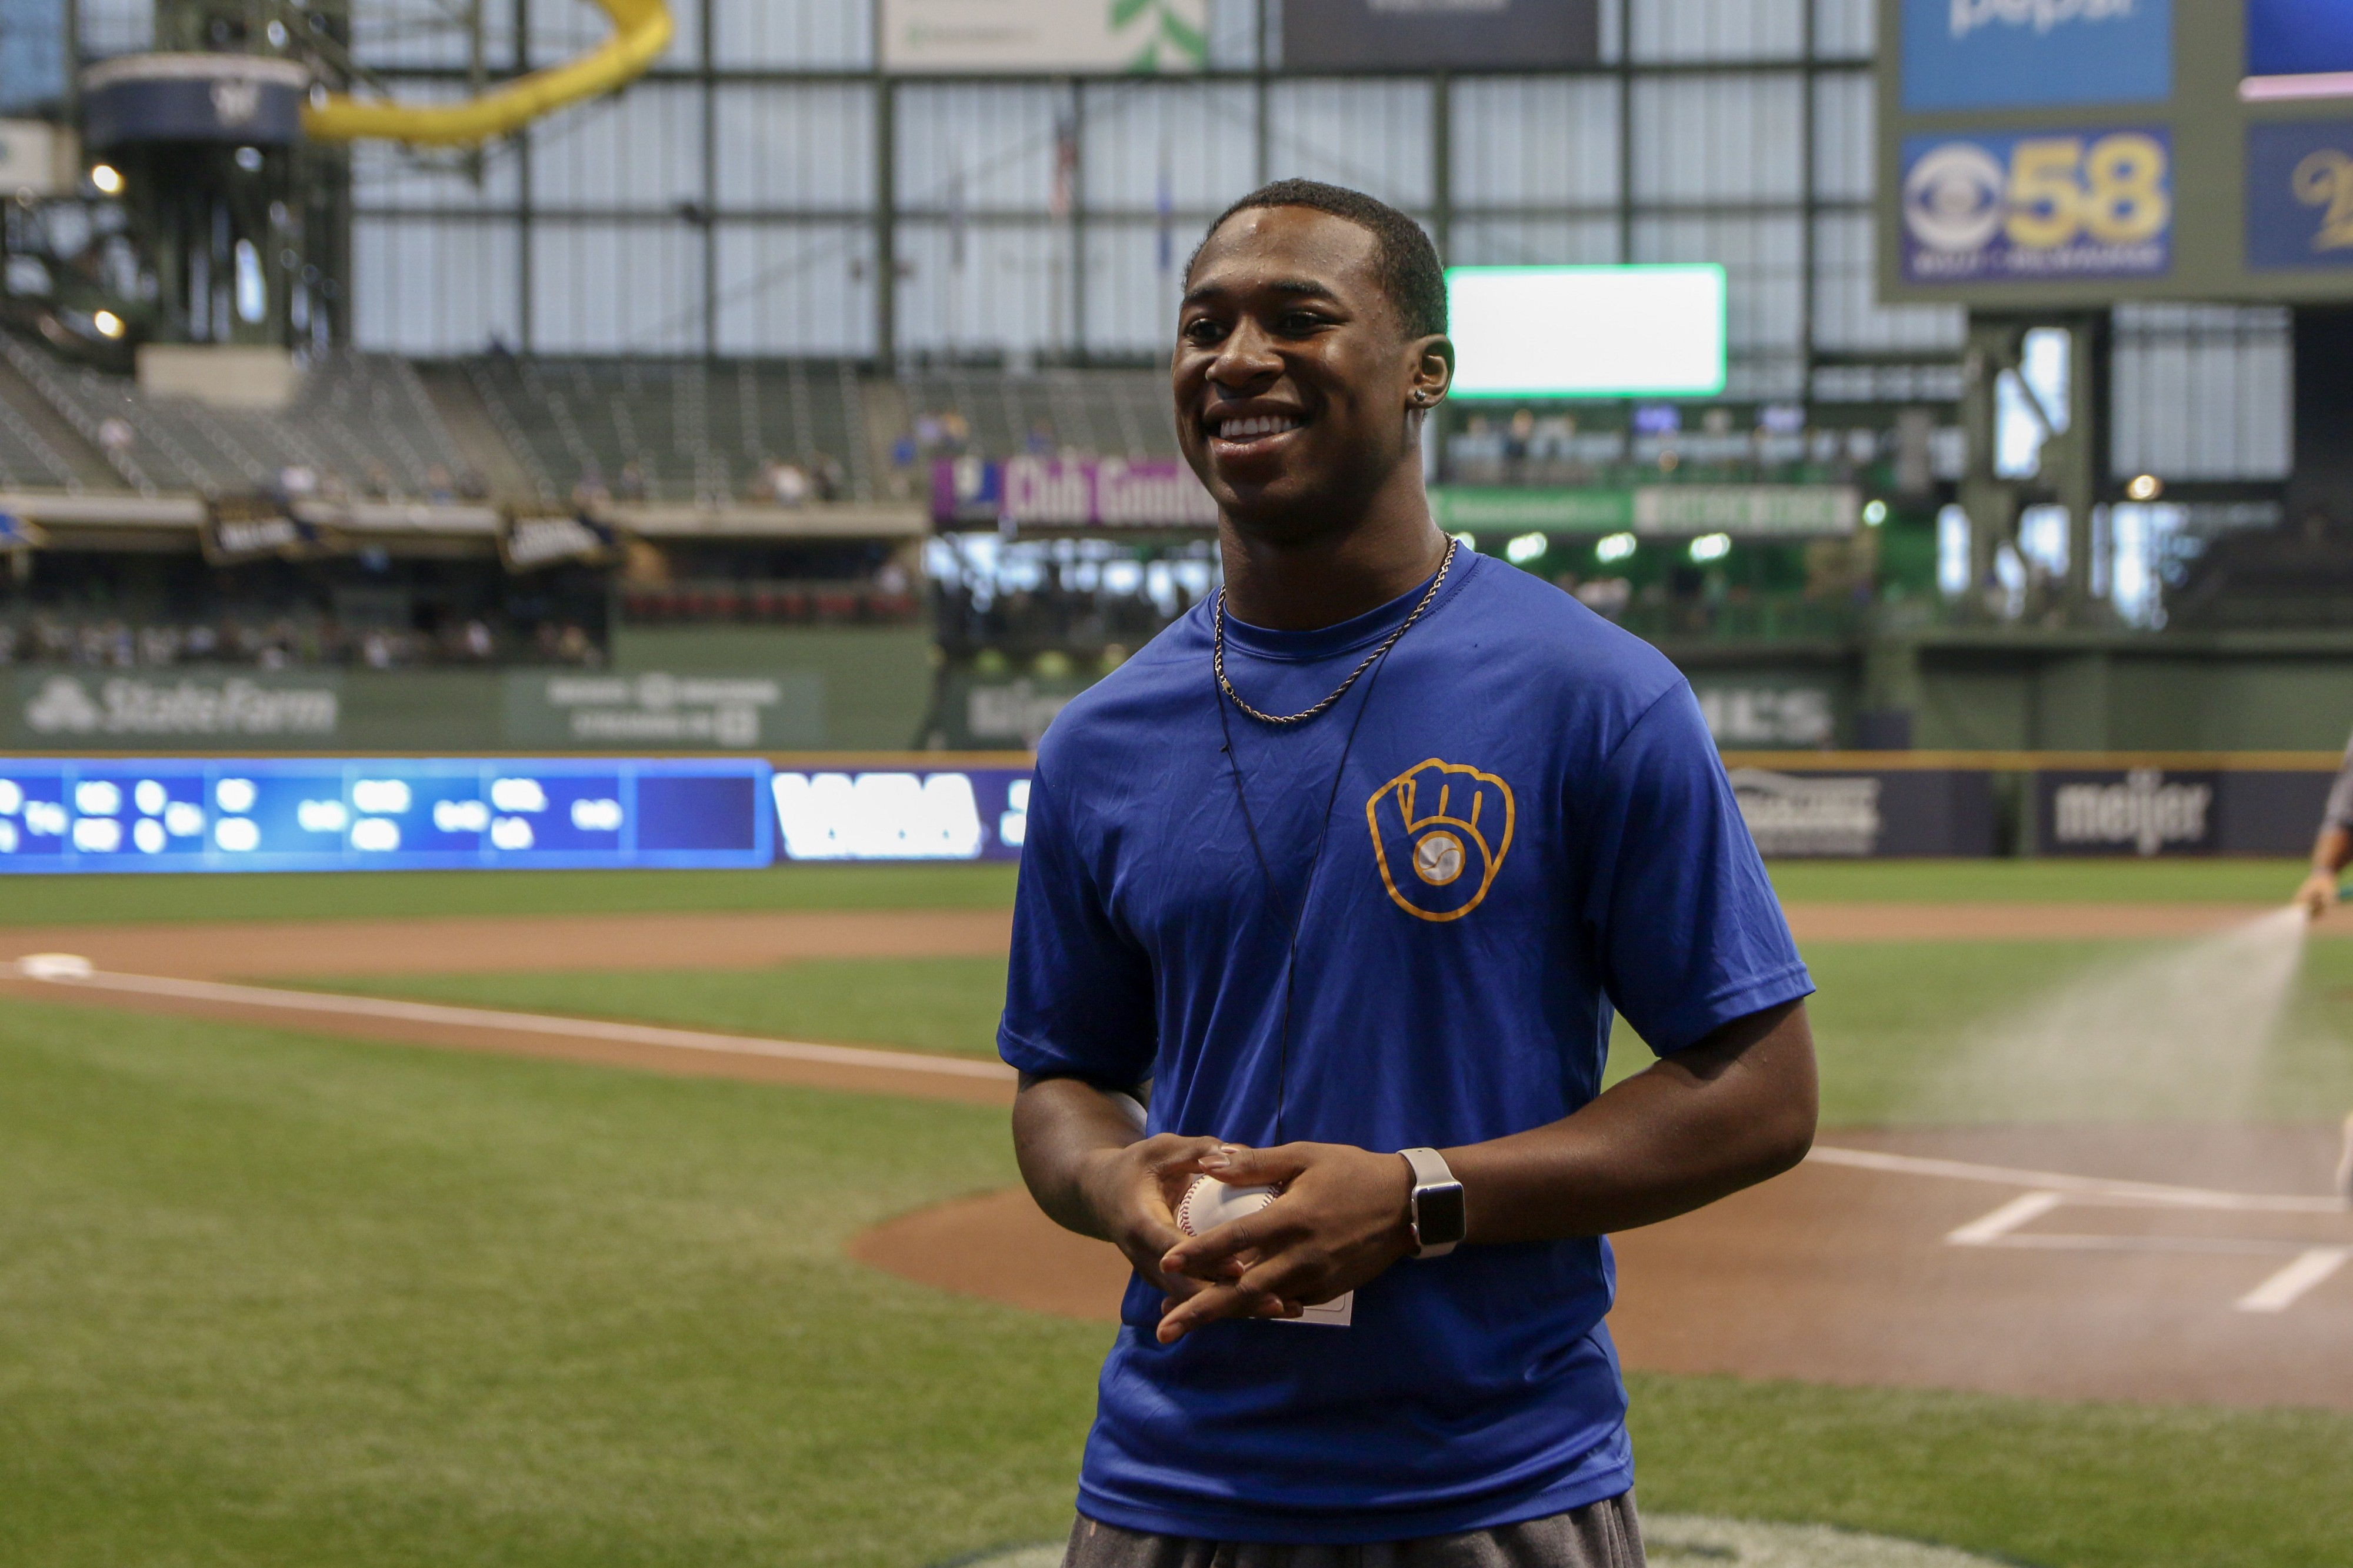 Congratulations To Brewers Rbi Athlete Amaun Williams By Caitlin Moyer Cait Covers The Bases